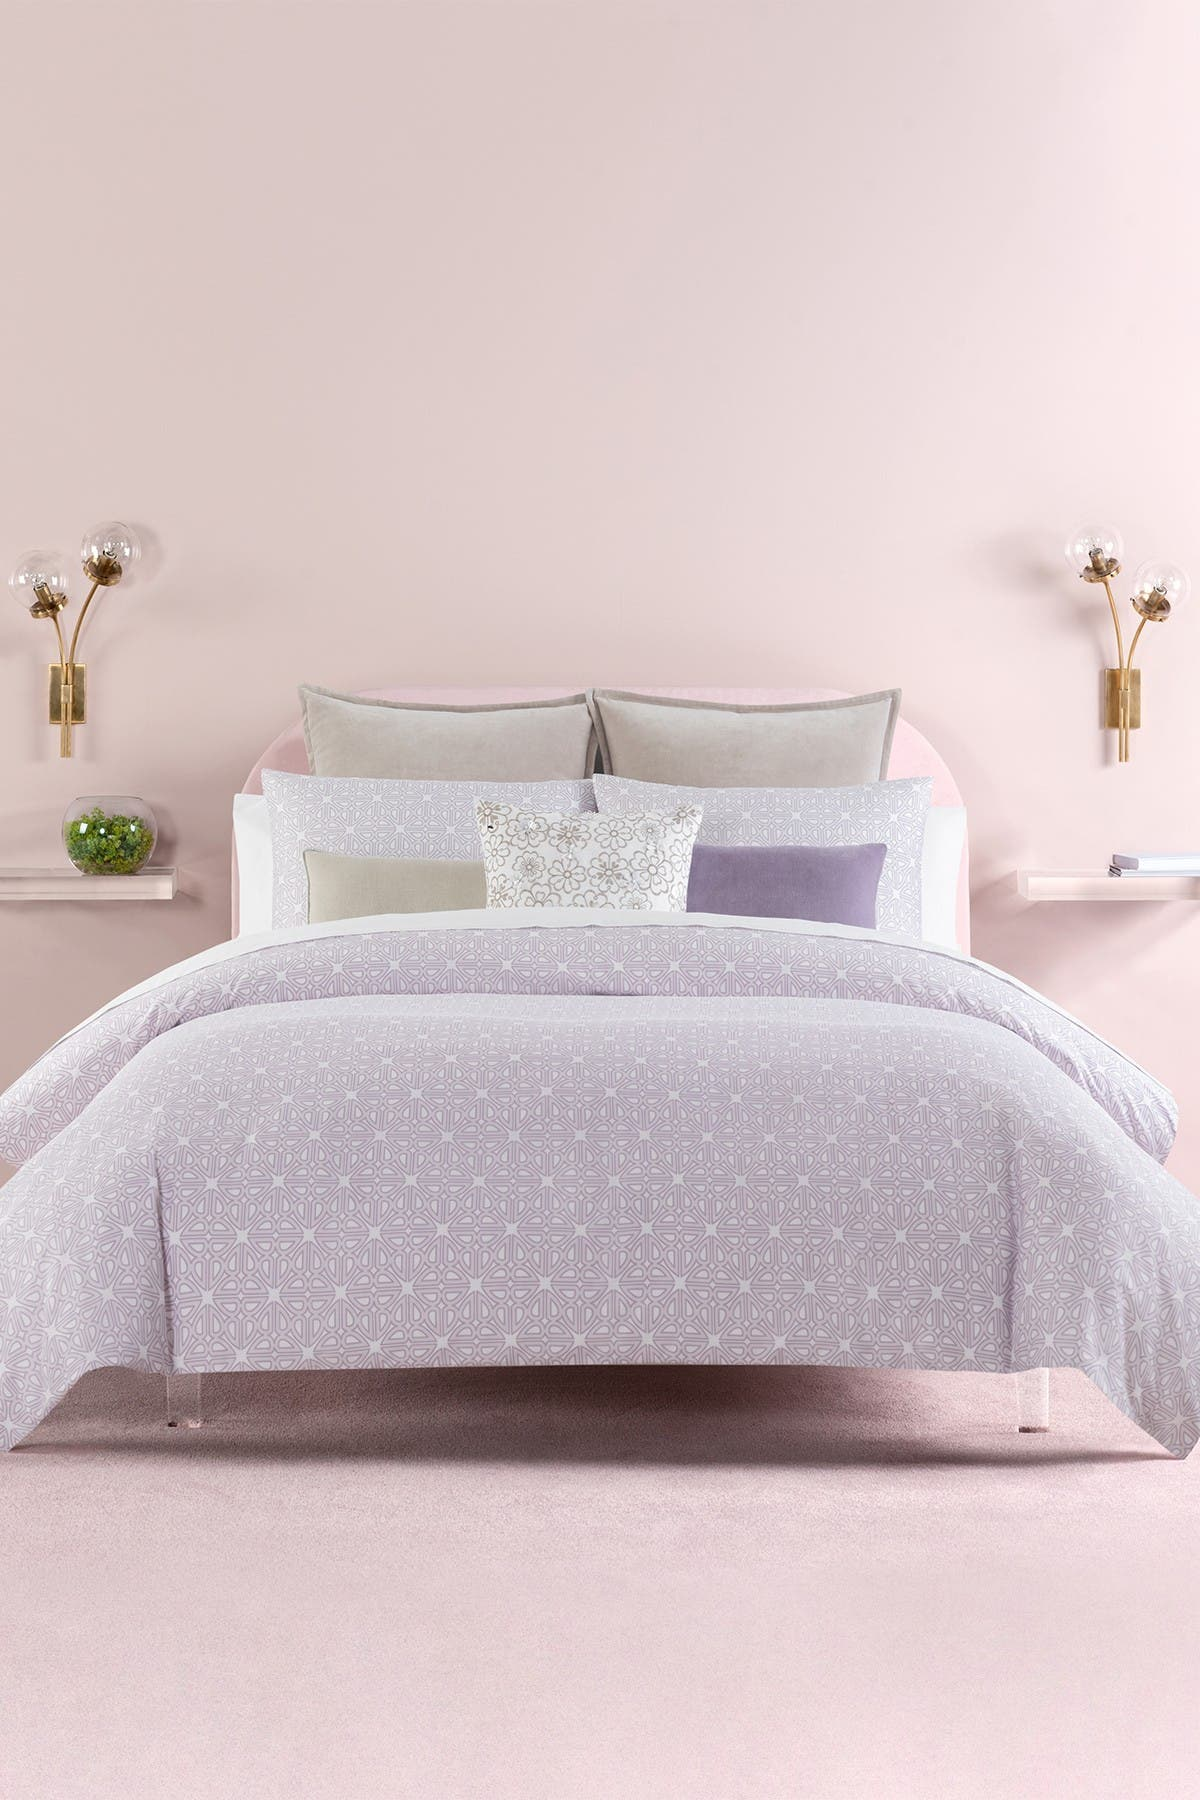 Image of kate spade new york lavender breeze blocks full/queen comforter 3-piece set